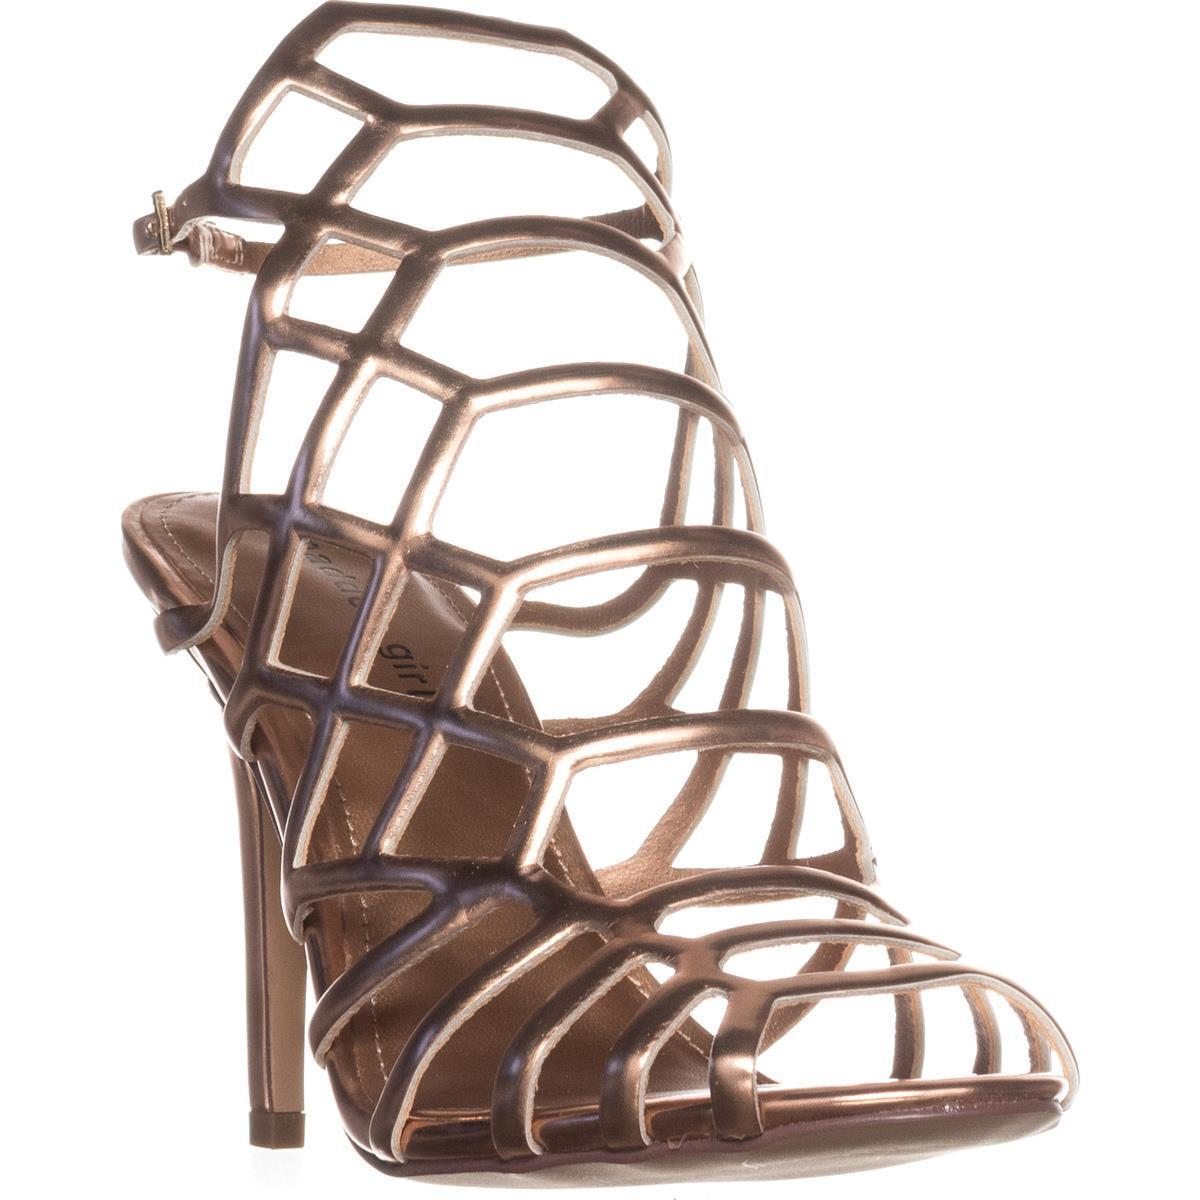 Womens madden girl Directt Caged Ankle Strap Sandals, Rose Gold, 6 US